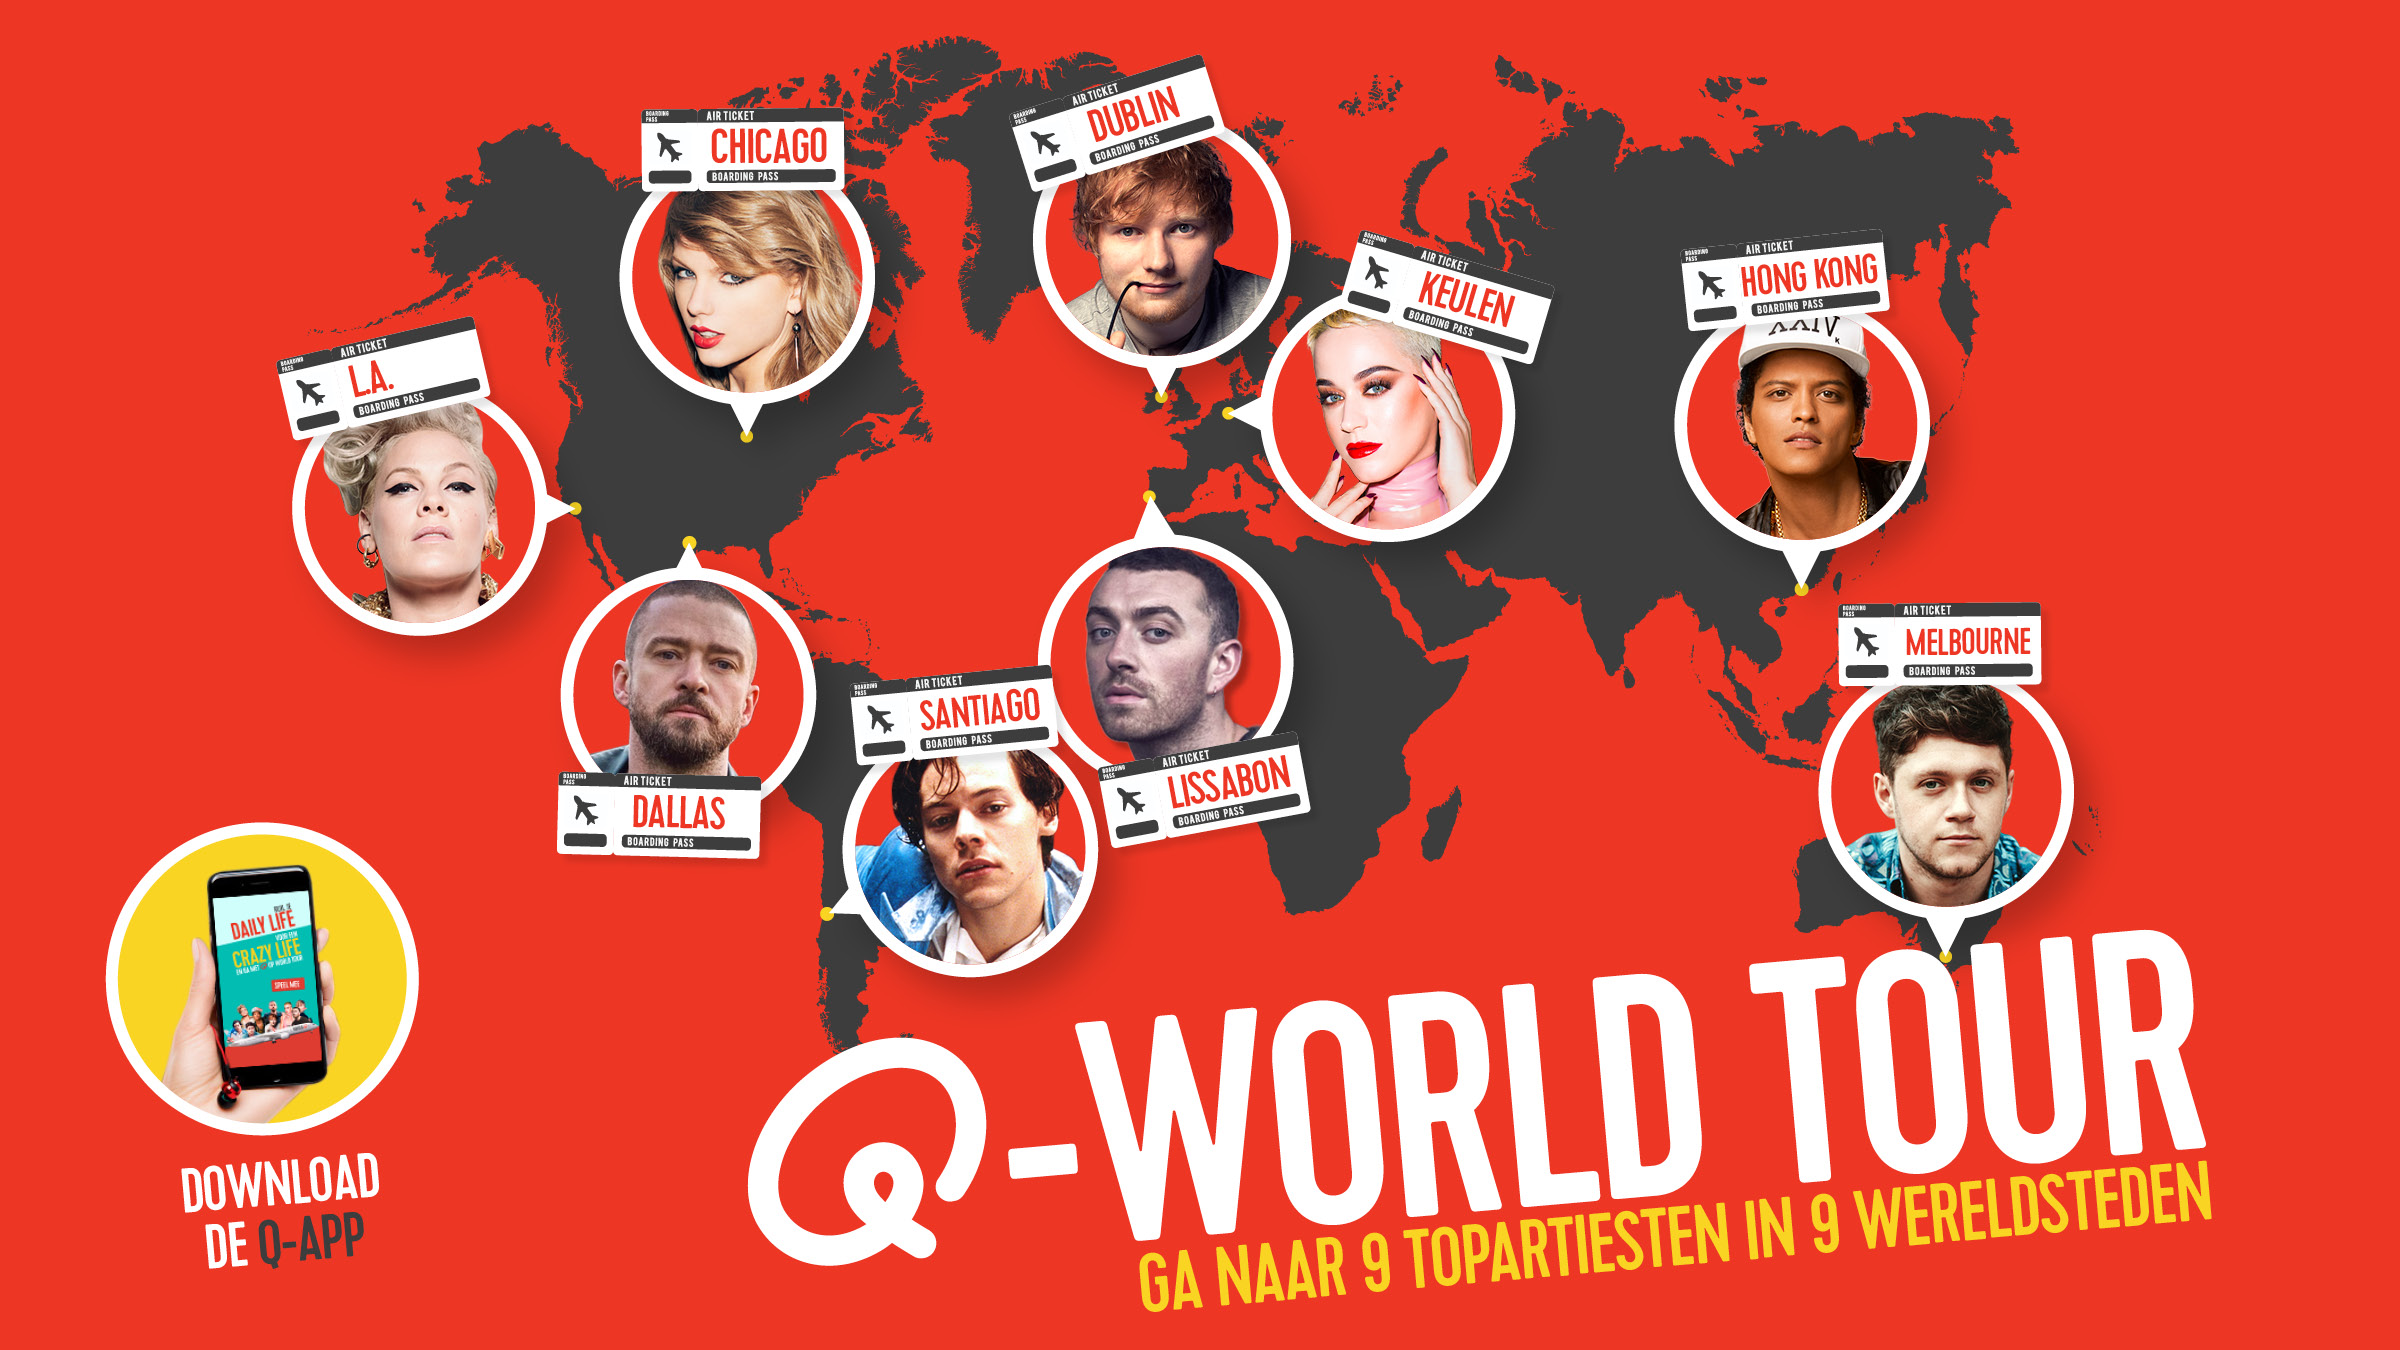 Qworld tour home